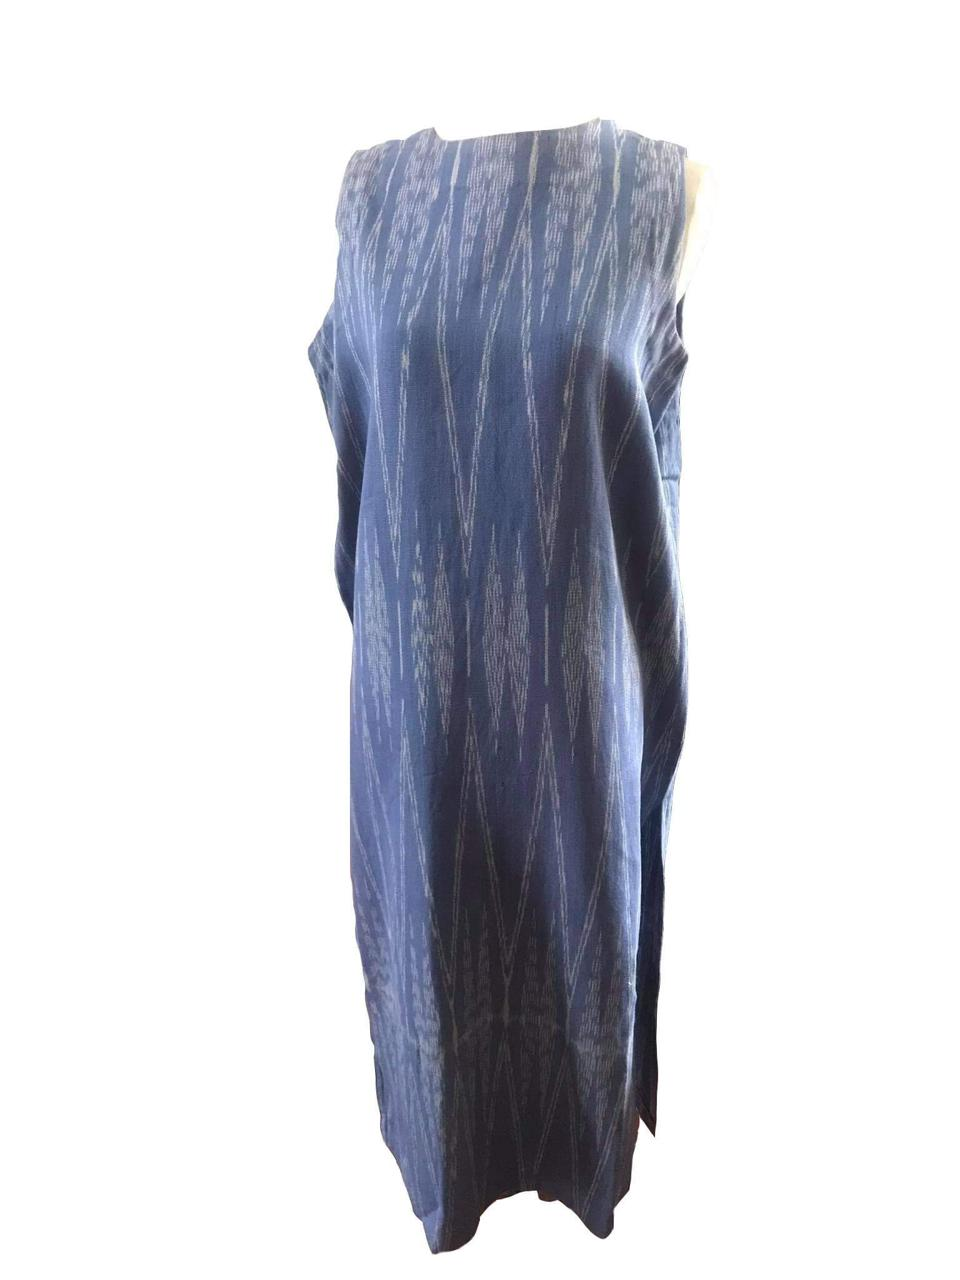 Blue long dress made using 100% handwoven Bagobo textile from CAMLU